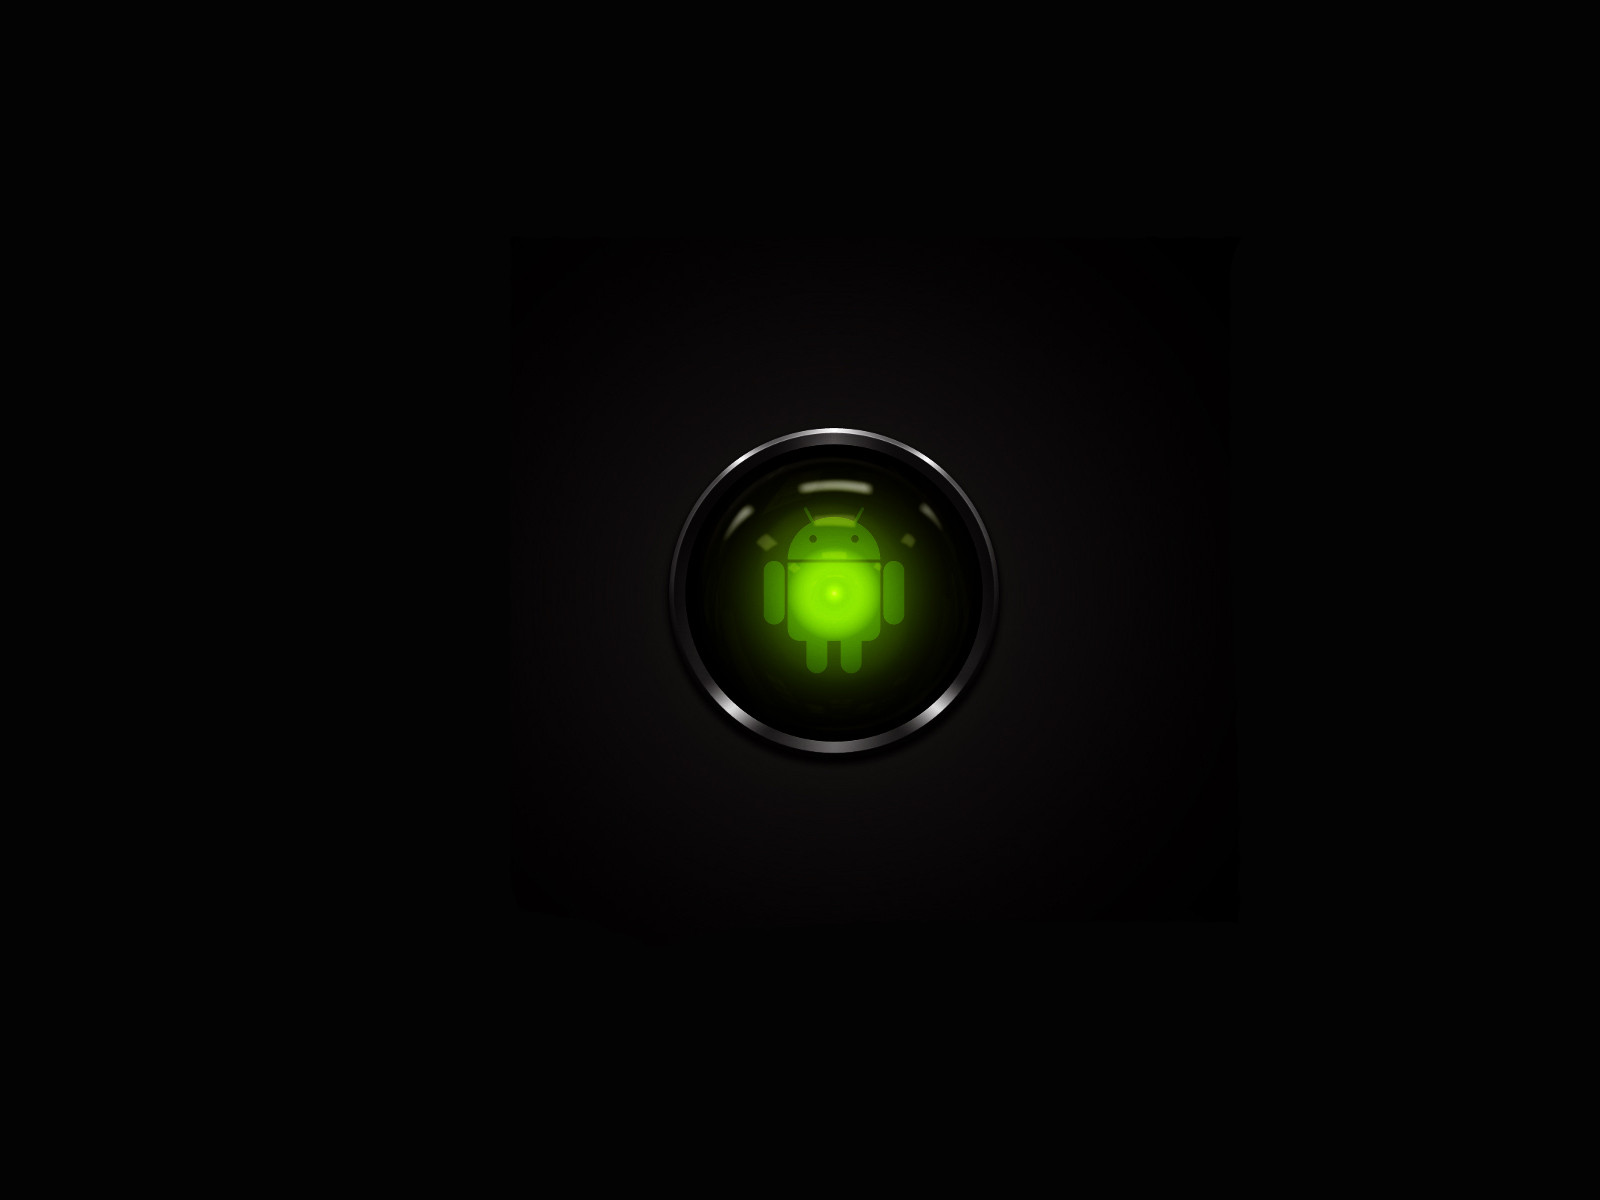 Hd wallpaper android - Green Android 1600x1200 4944 Android Wallpapers Hd Black Background